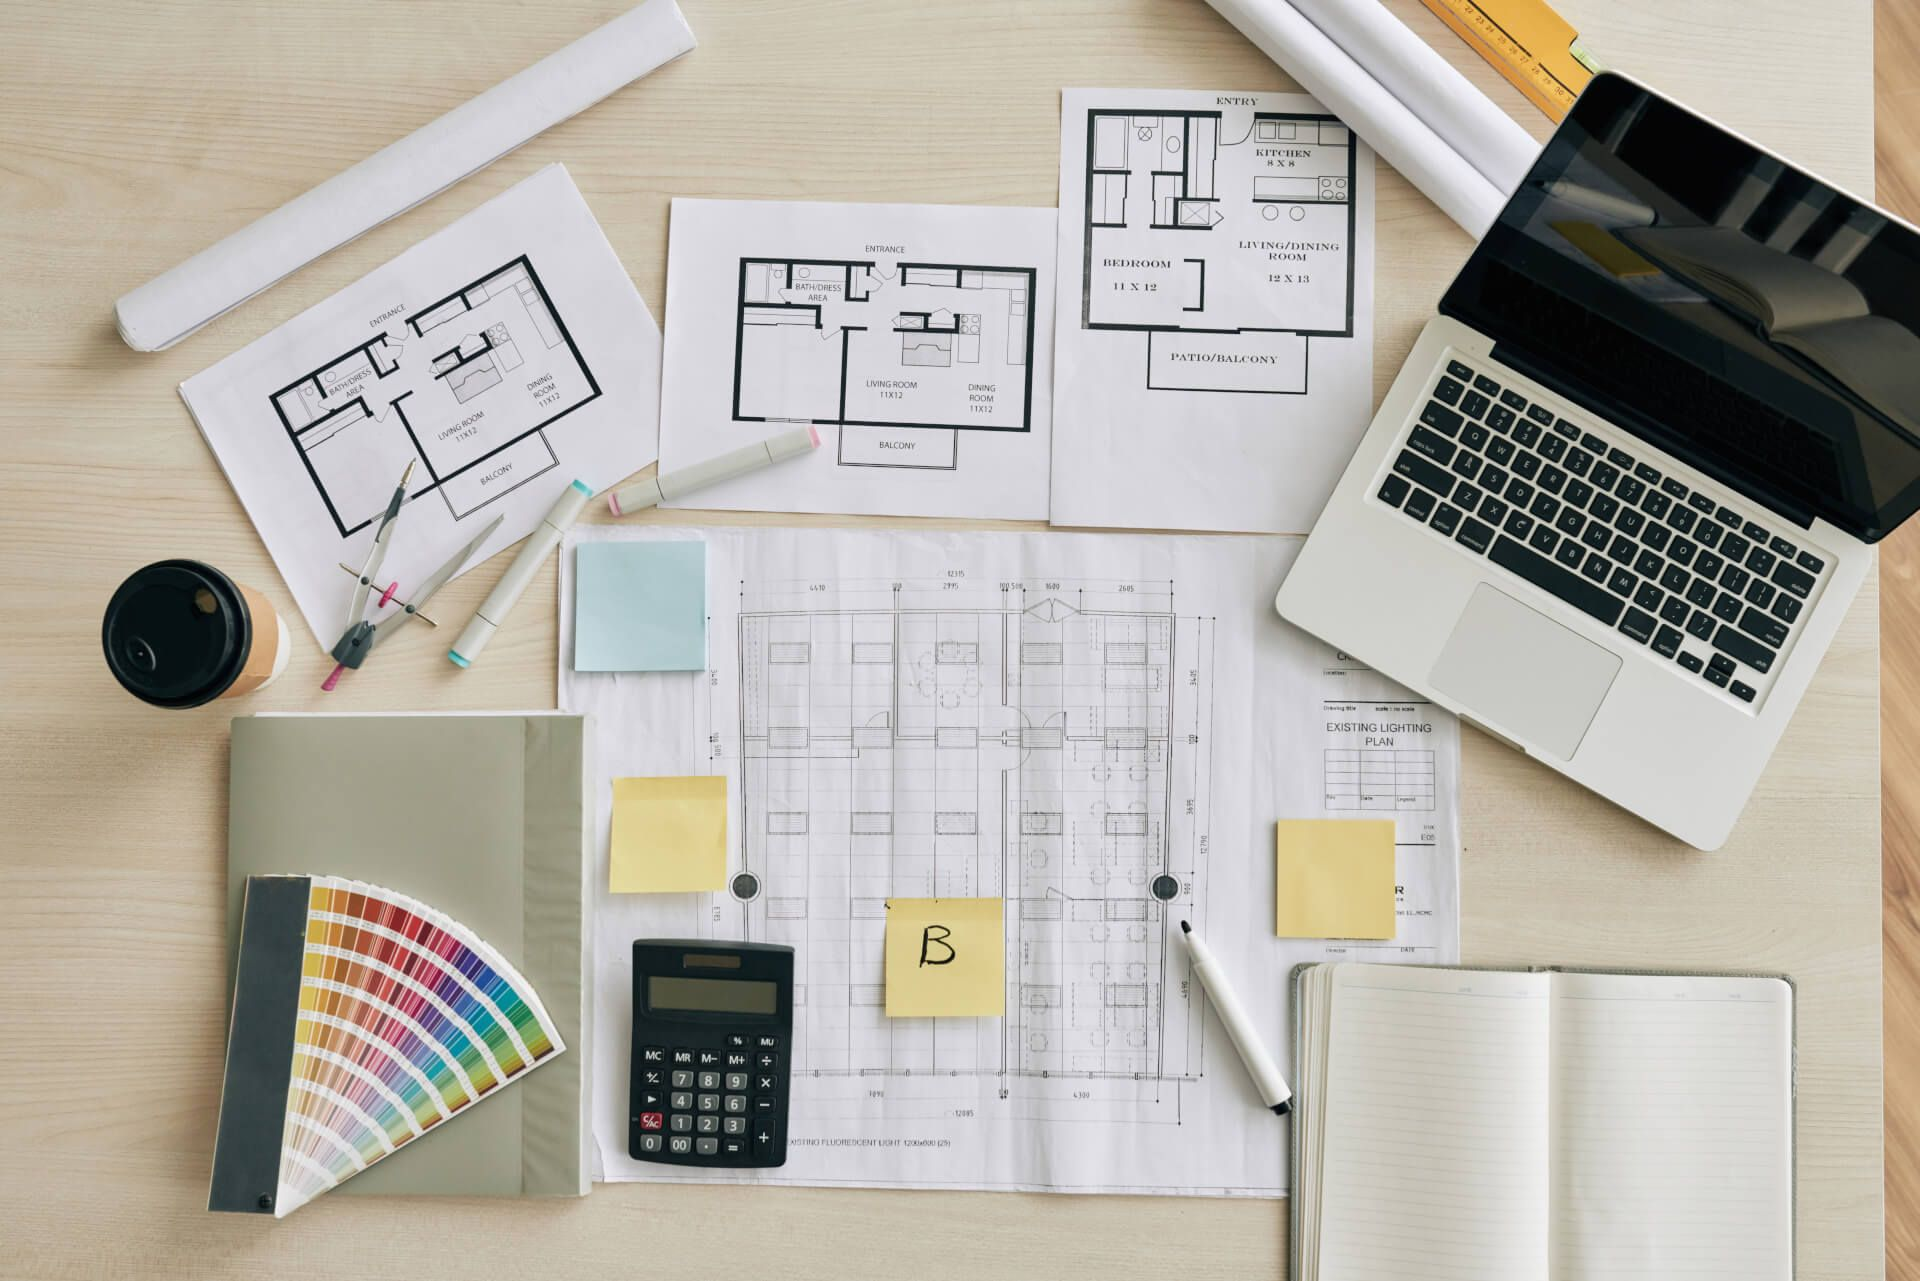 Floor plans and laptop